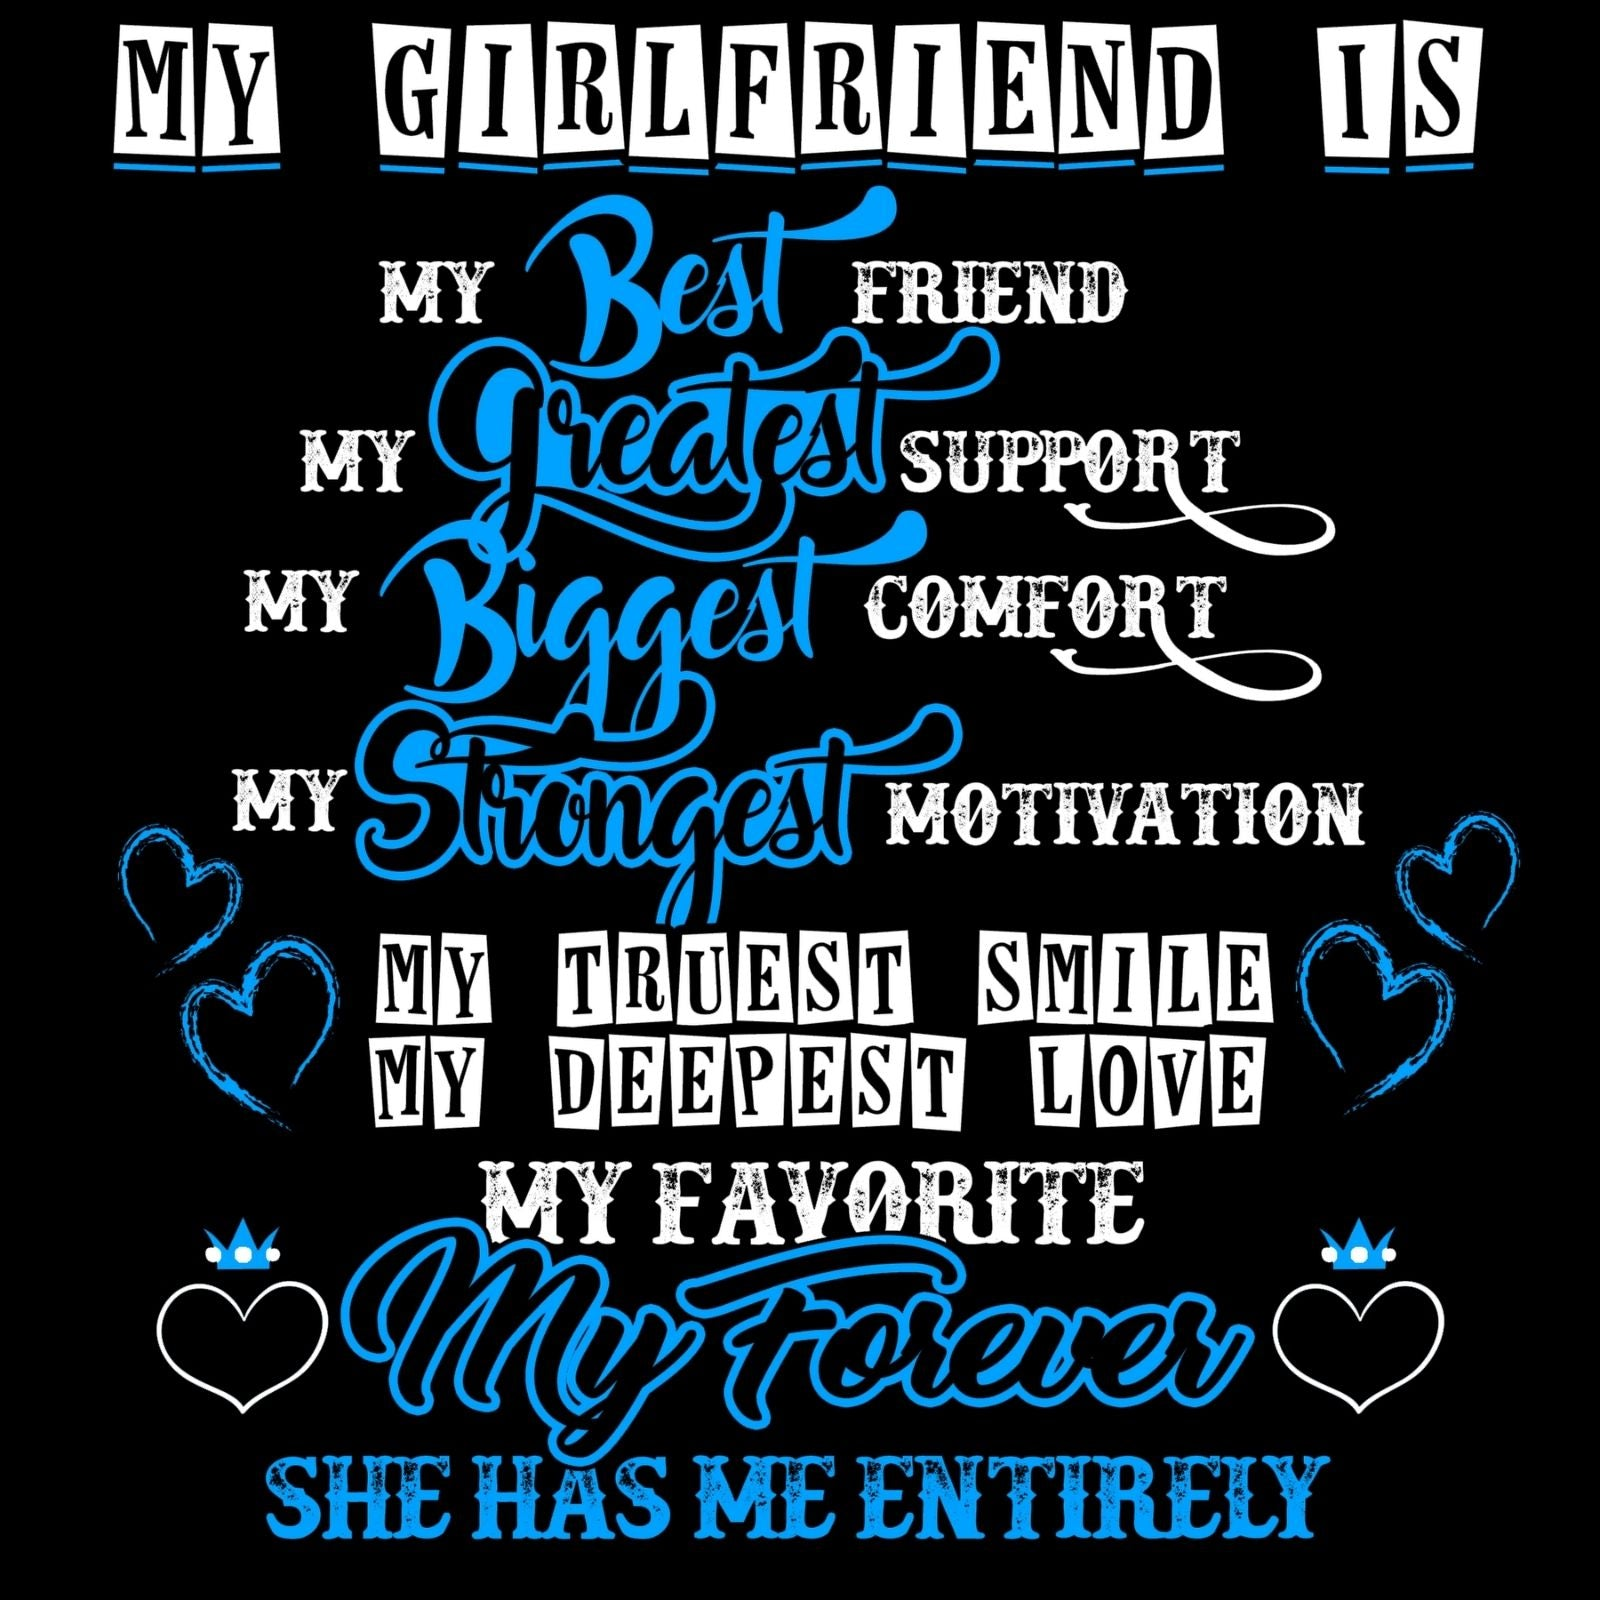 My Girlfriend Is My Best Friend My Greatest Support My Biggest Comfort My Strongest Motivation My Truest Smile My Deepest Love My Favorite My Forever She Has Me Entirely - Bastard Graphics